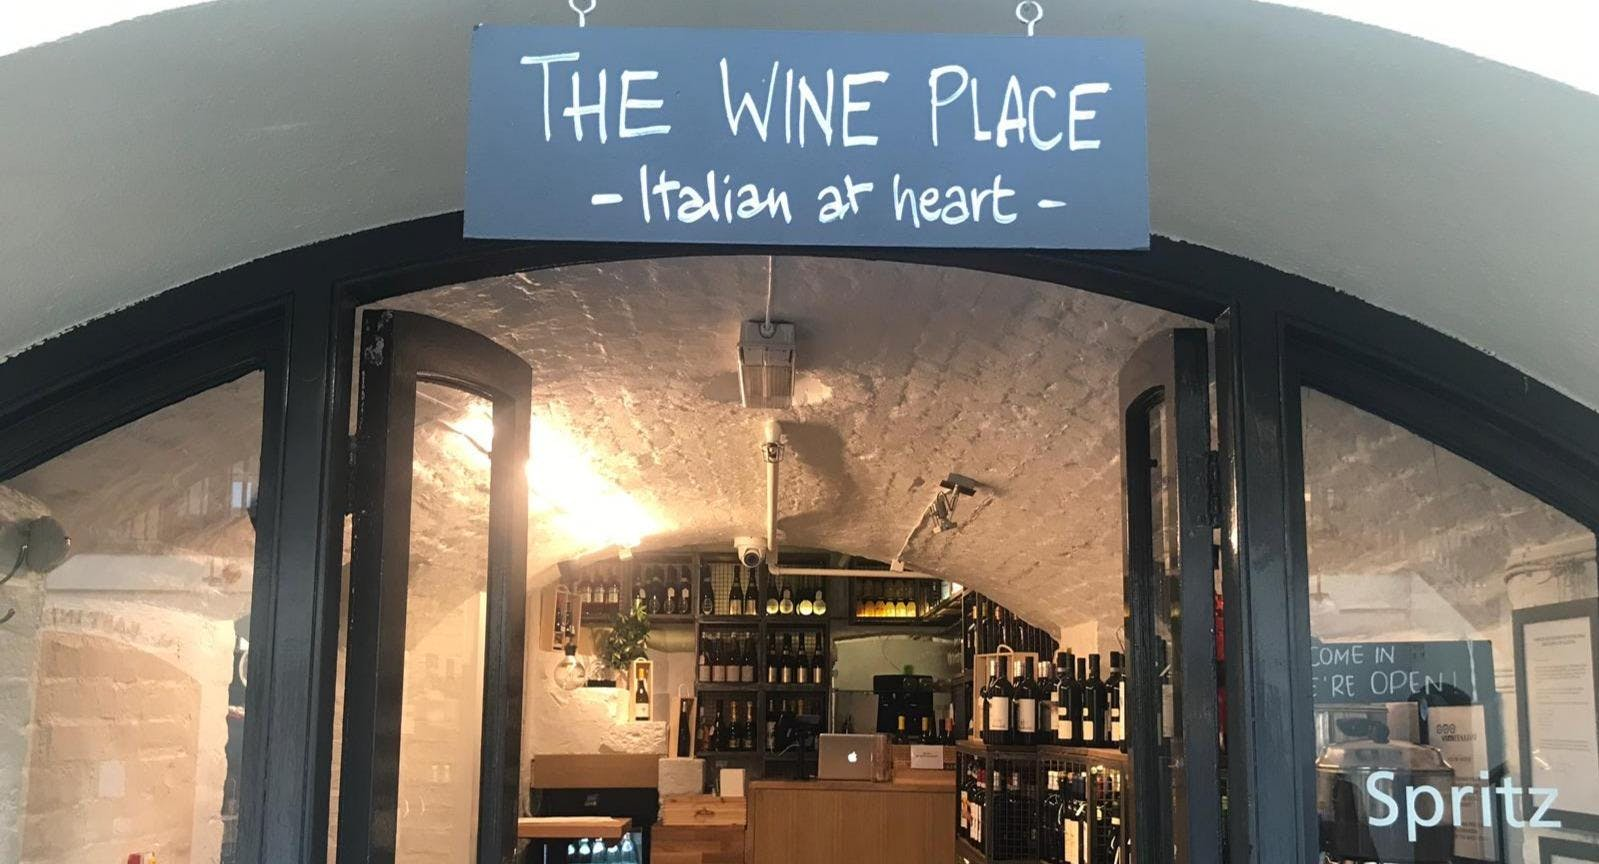 The Wine Place - Covent Garden London image 2